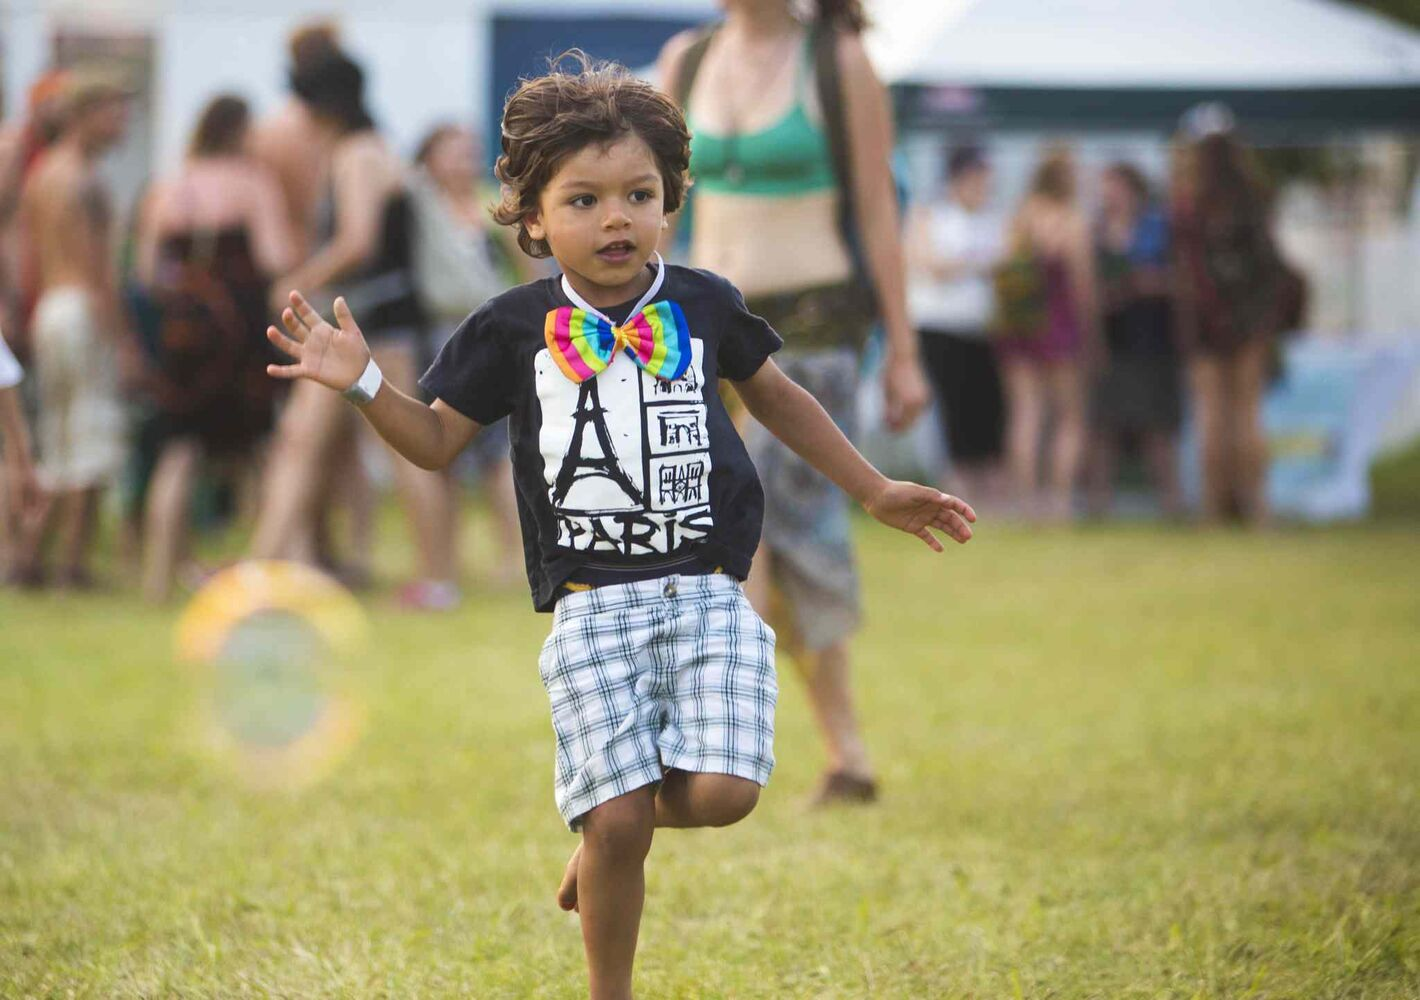 Efram Loewen Becker, 4, catches bubbles at the Winnipeg Folk Festival in Birds Hill Park on Friday, July 10, 2015.   Mikaela MacKenzie / Winnipeg Free Press (Winnipeg Free Press)